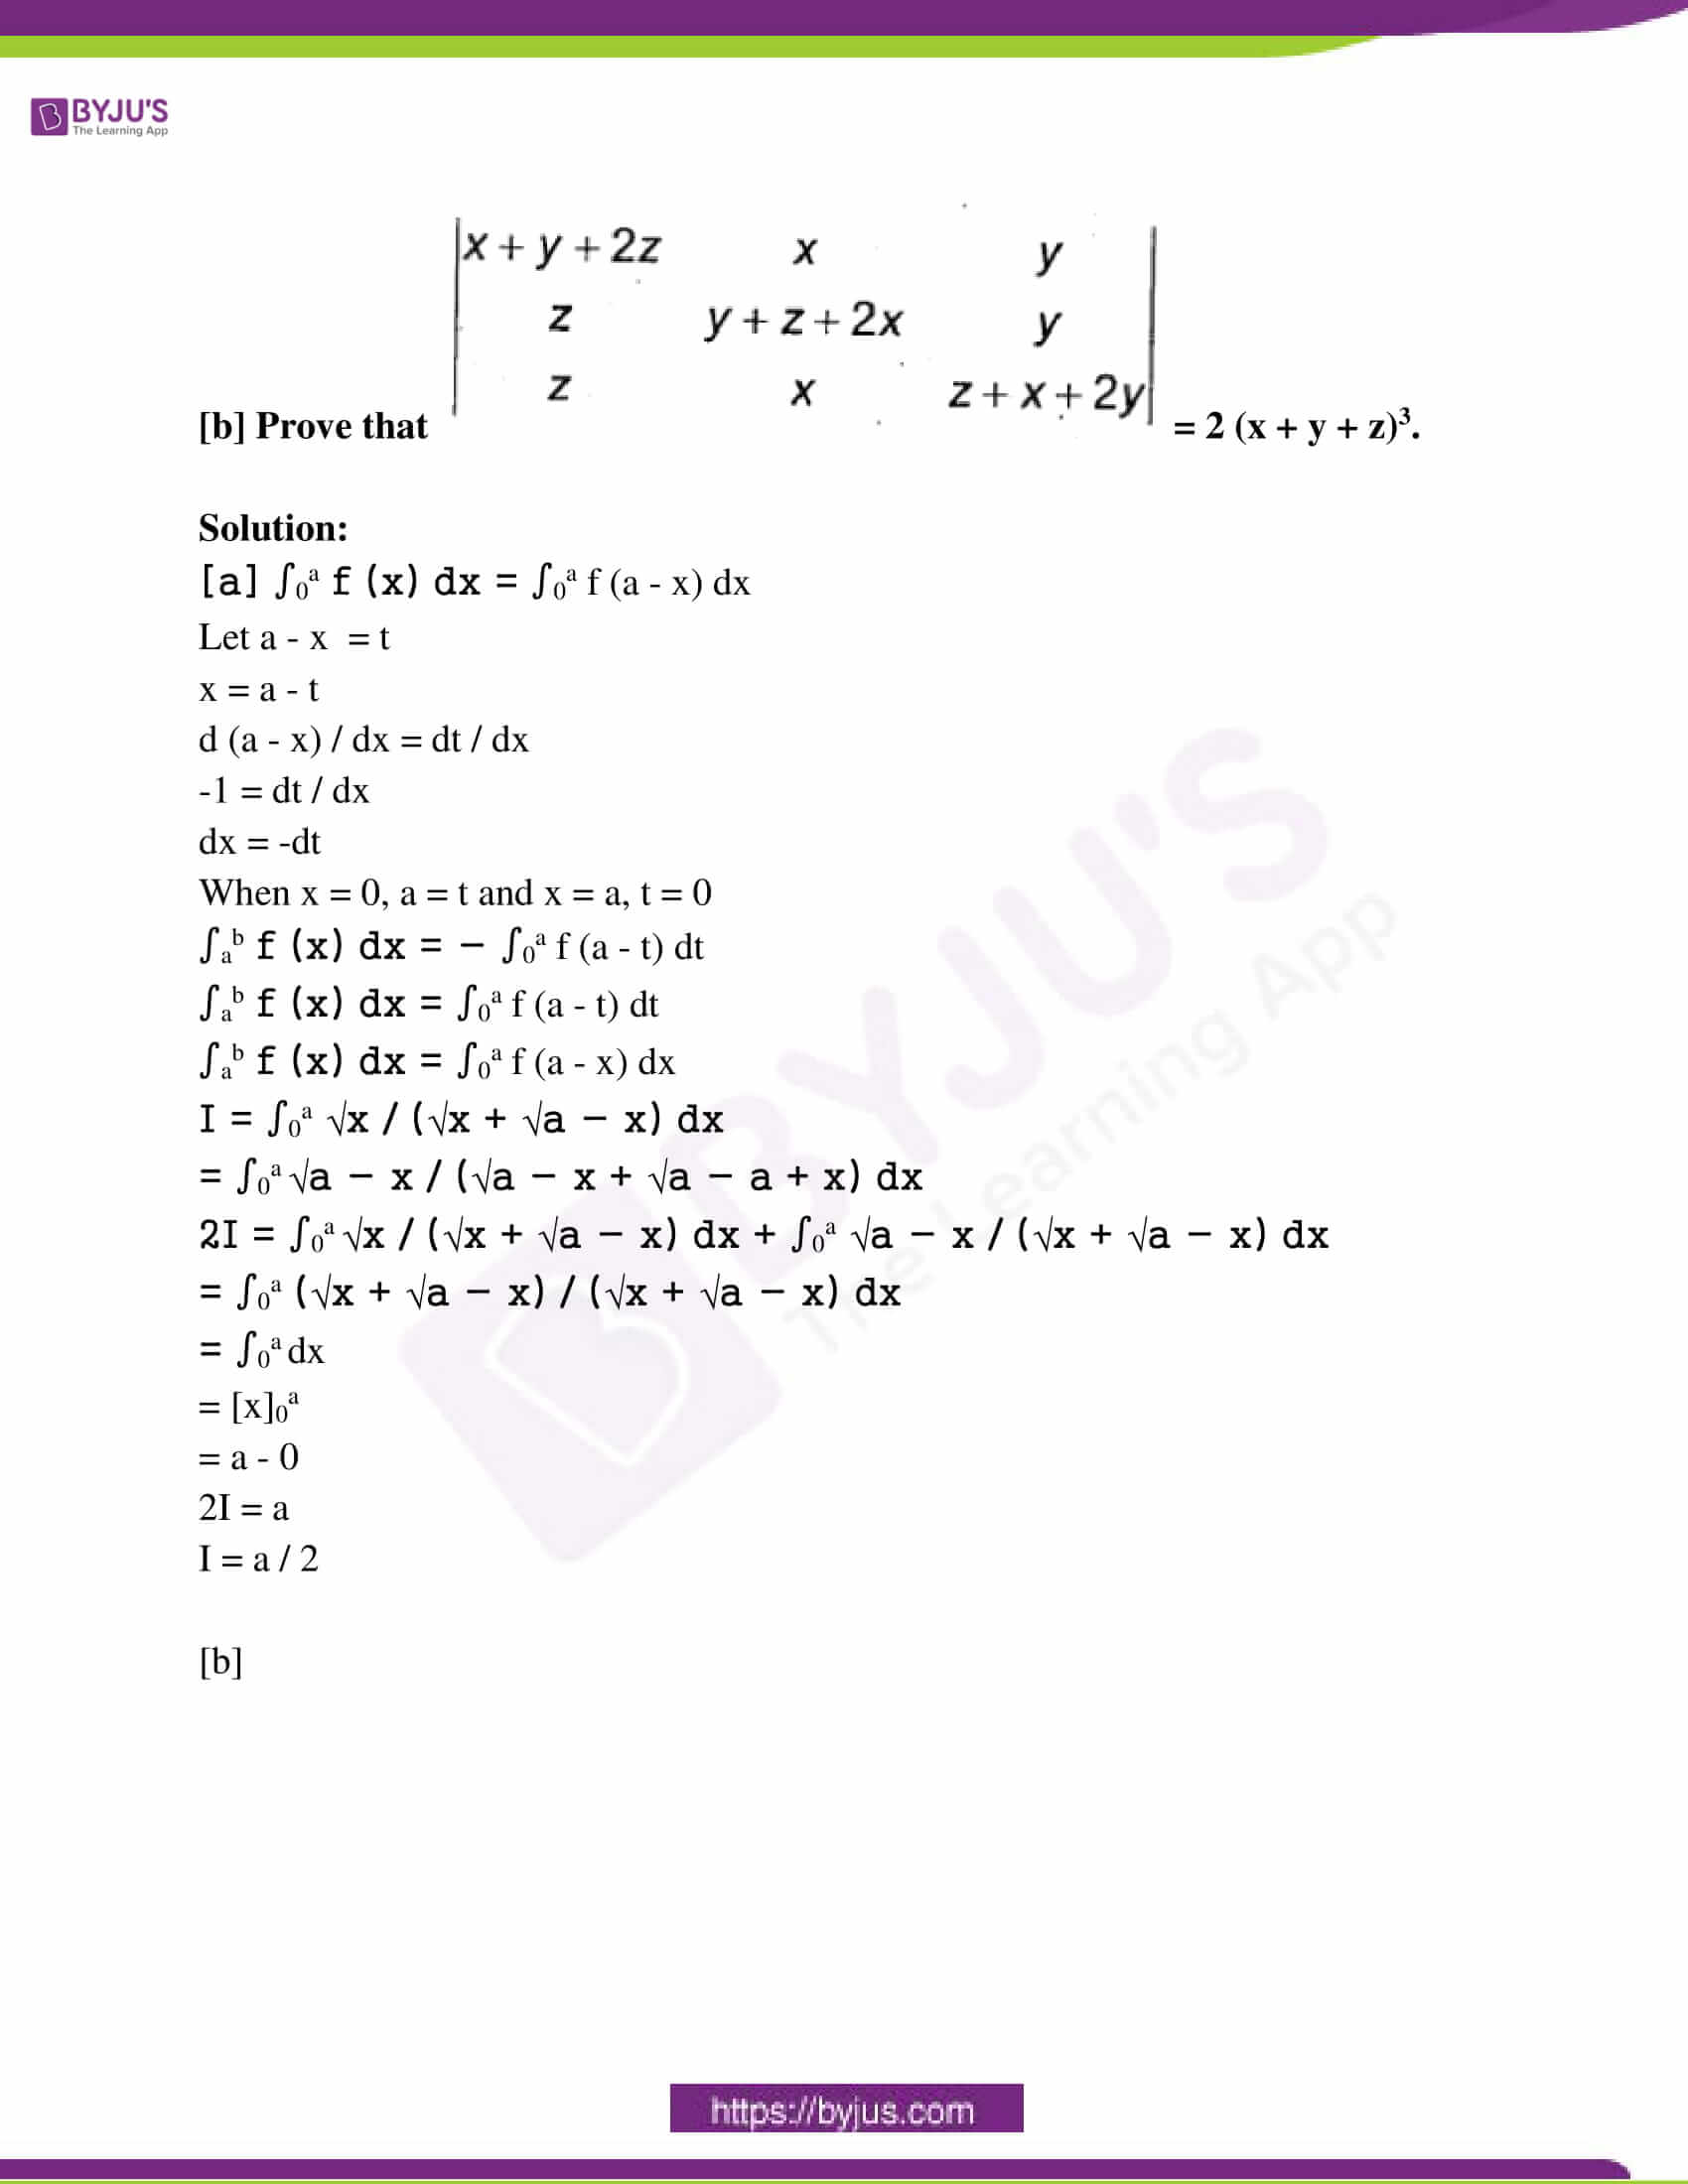 kseeb class 12 exam question paper solutions march 2018 26